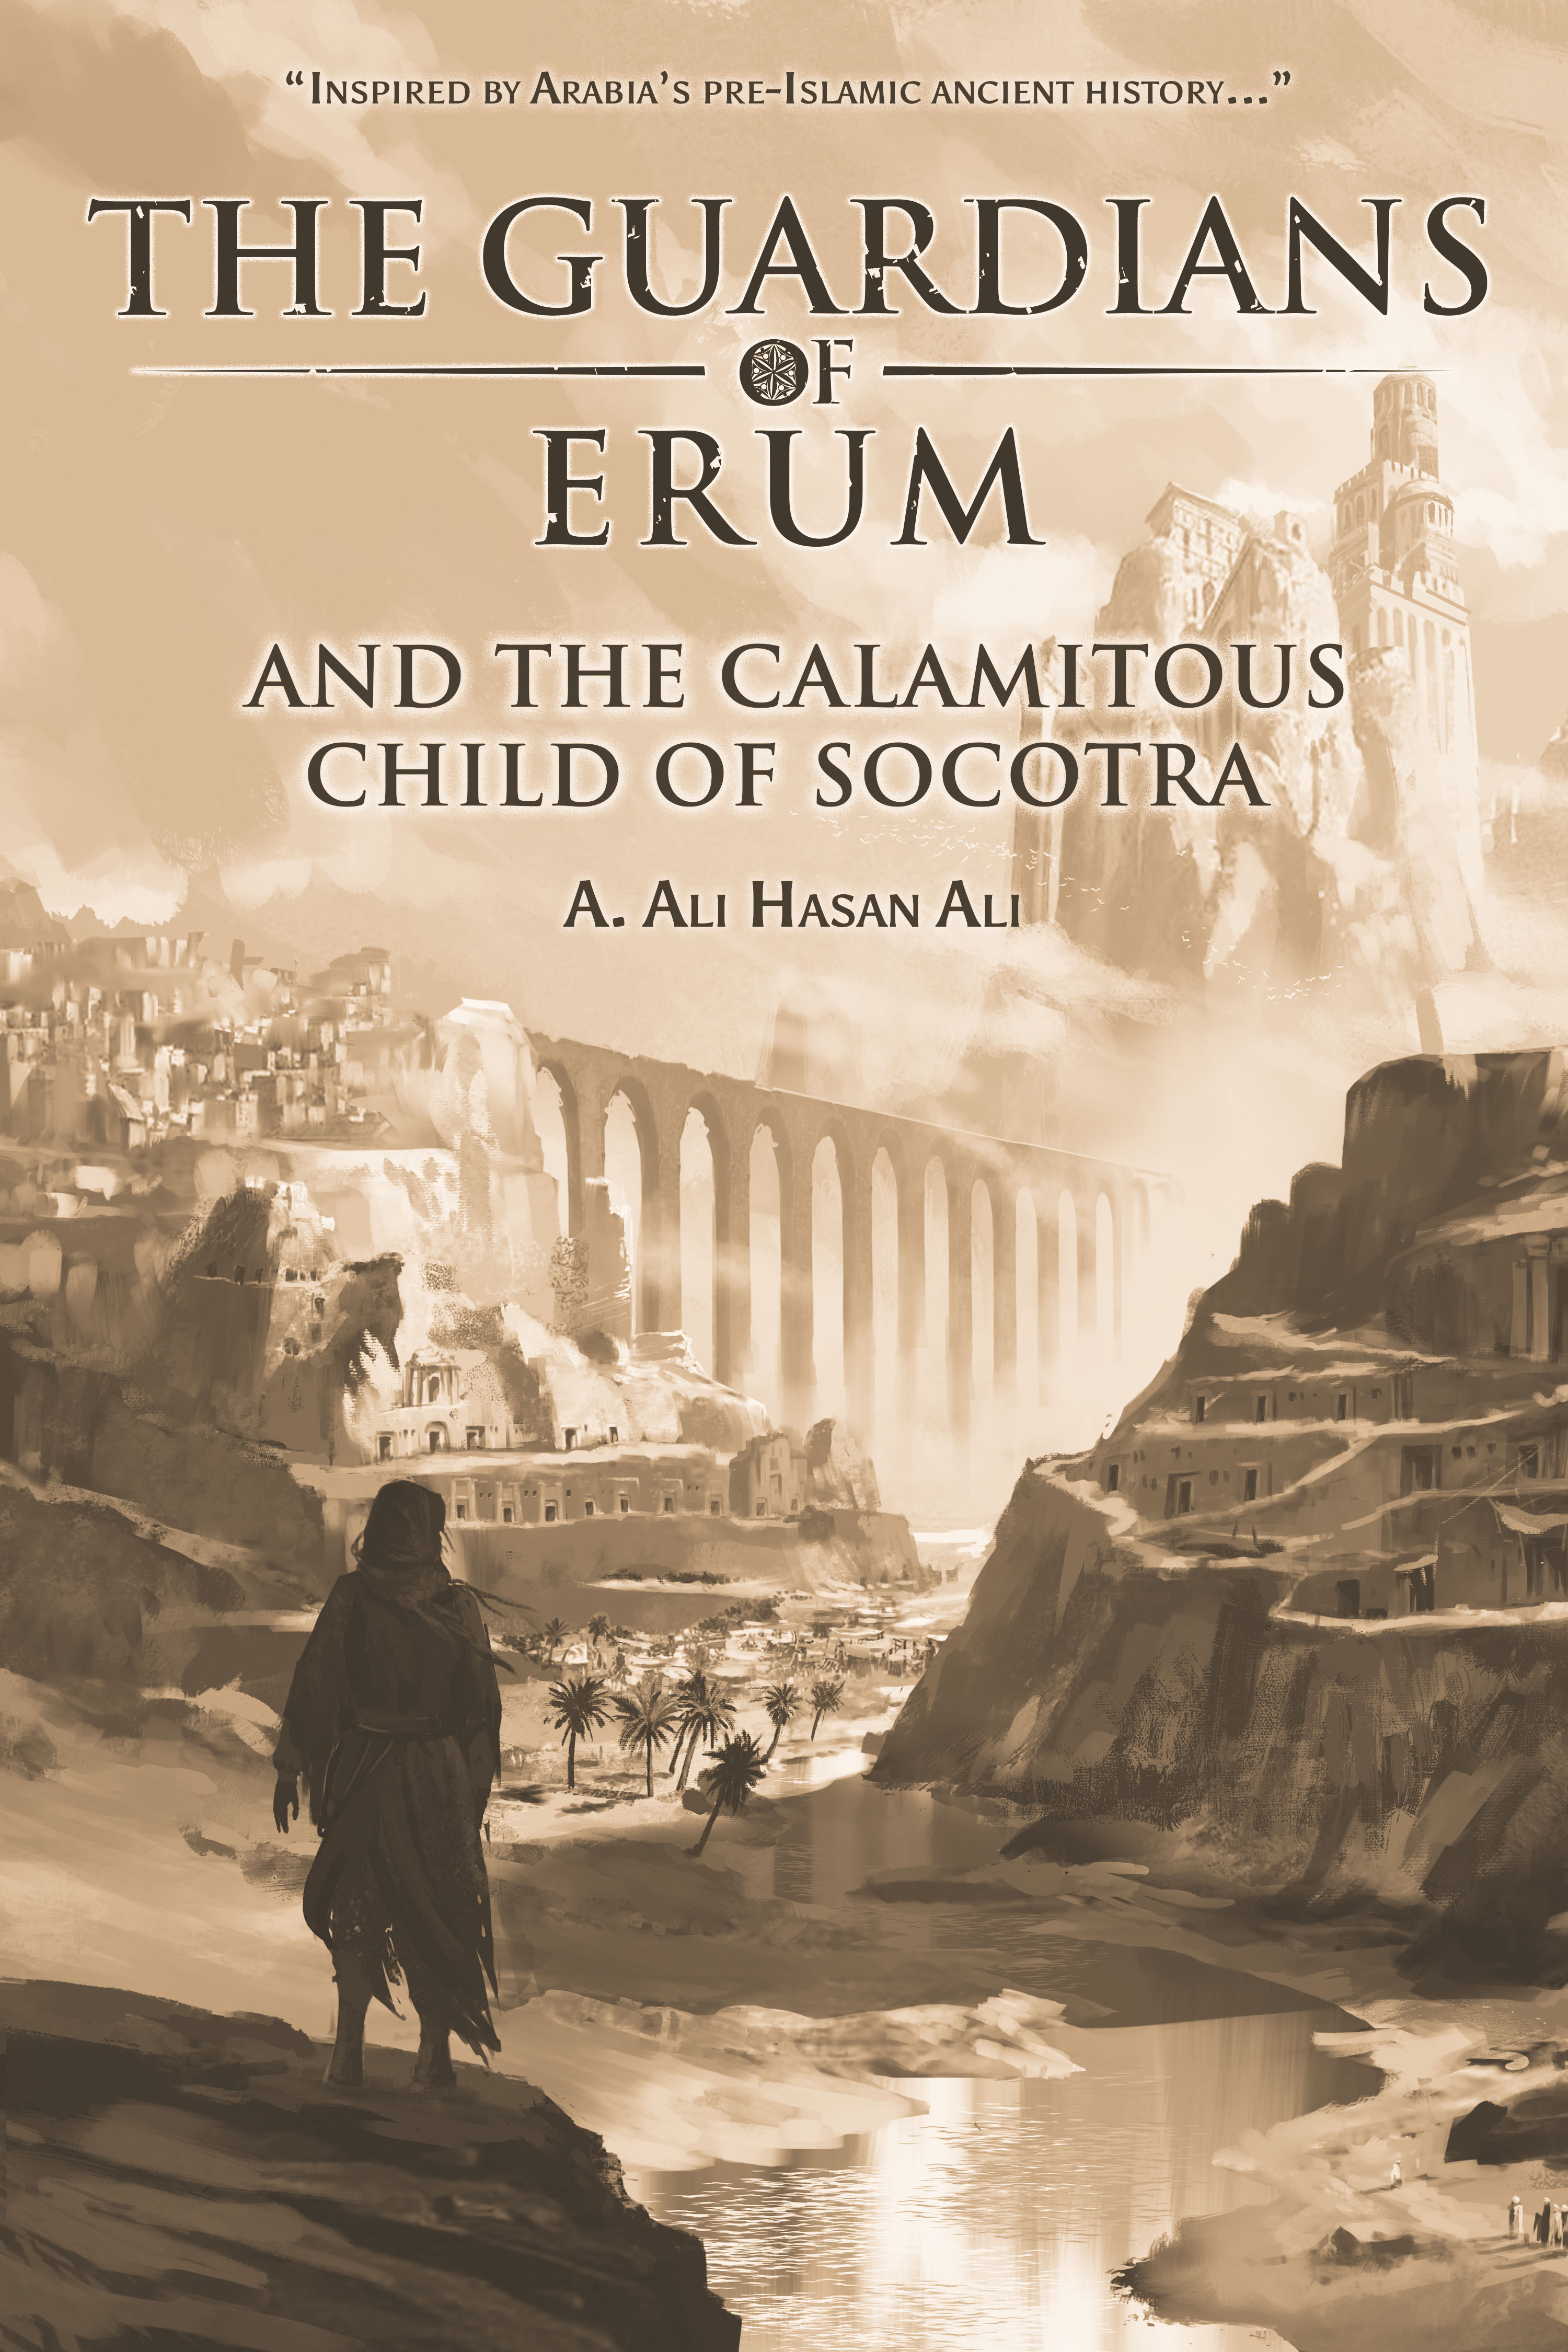 THE GUARDIANS OF ERUM AND THE CALAMITOUS CHILD OF SOCOTRA